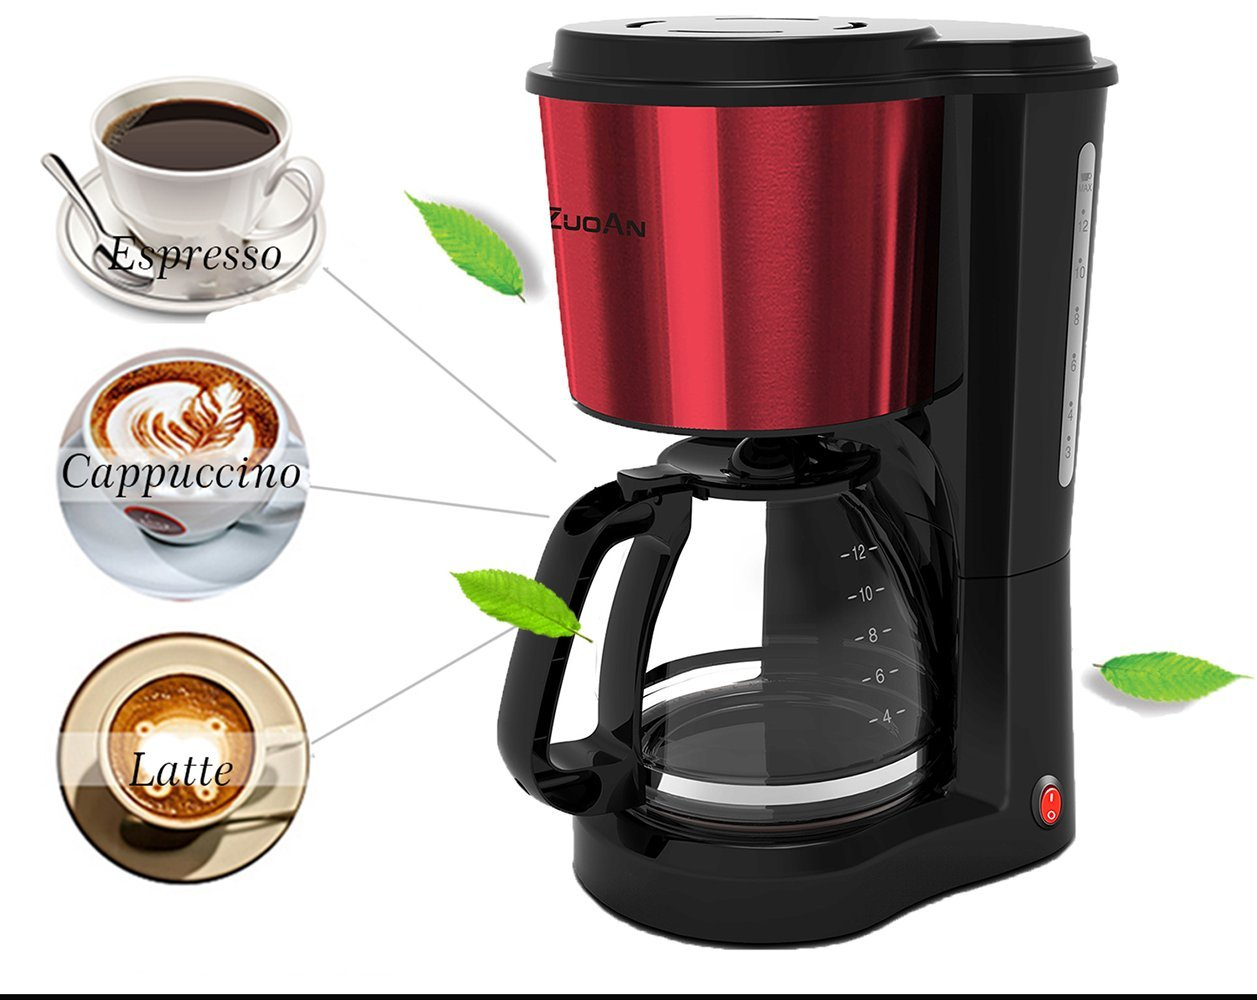 Coffee Make 12-Cup Drip Coffeemakerr,ZuoAn With Glass Coffee Pot and Reusable Mesh Filter, Stainless Steel Coffee Machine,Black Large Capacity, CM-601 Black+Red (Black+Red) by ZUOAN (Image #4)